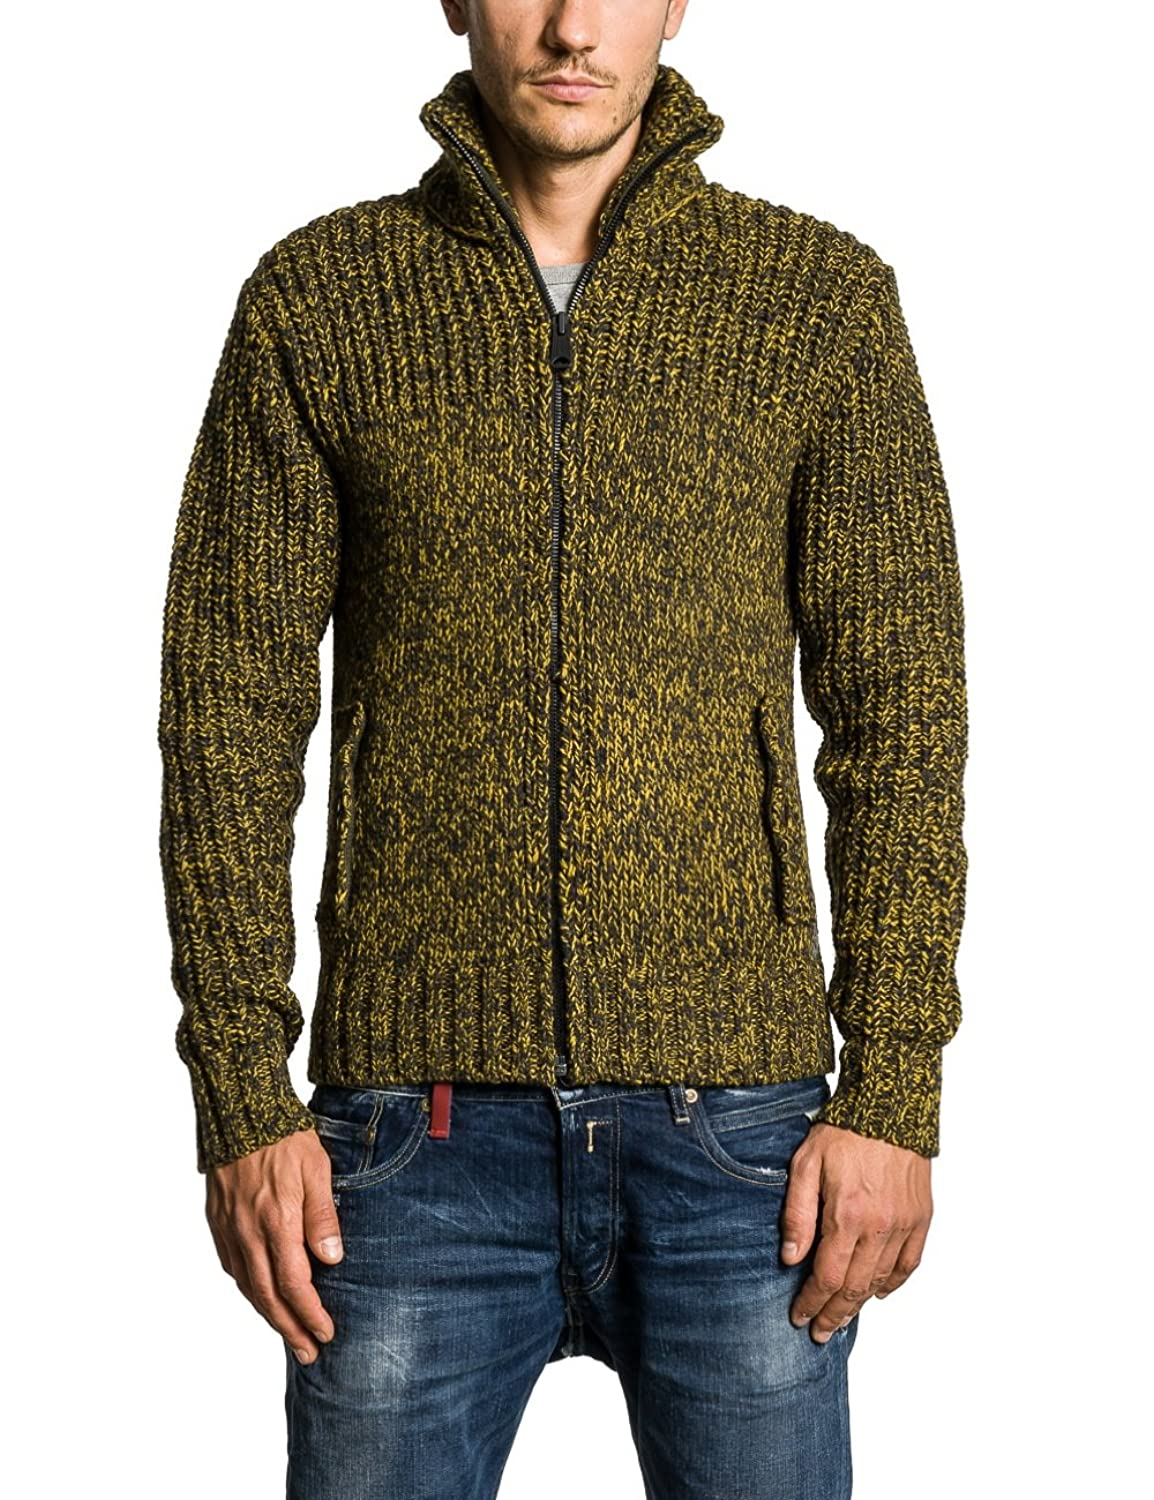 Replay Herren Strickjacke UK1011.000.G2897M günstig kaufen